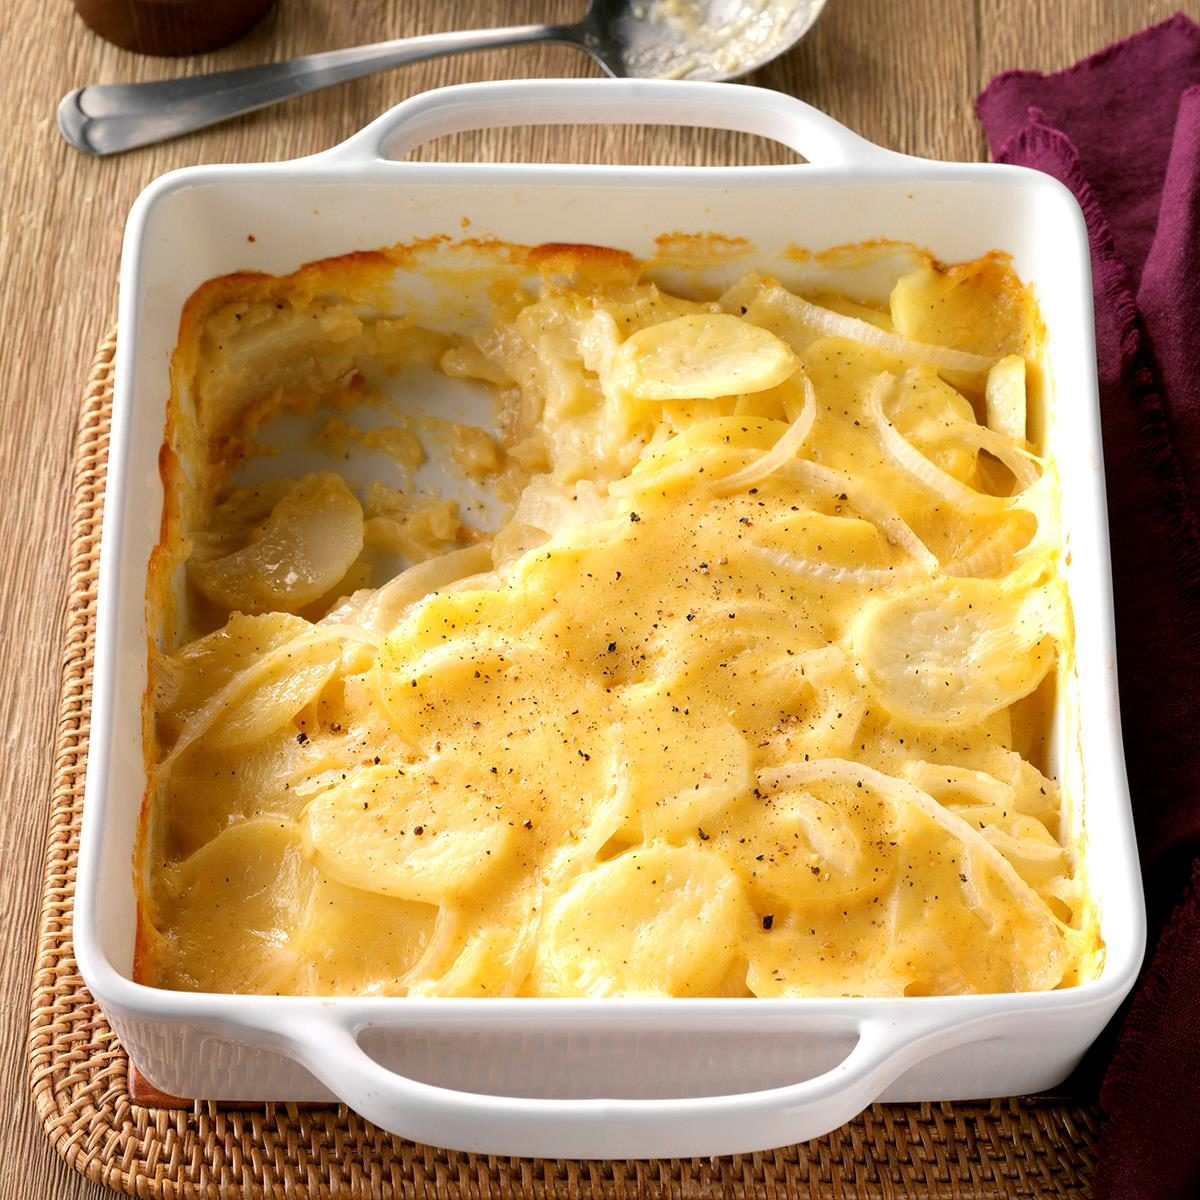 10 Healthy Ways To Cook With Potatoes: Never-Fail Scalloped Potatoes Recipe